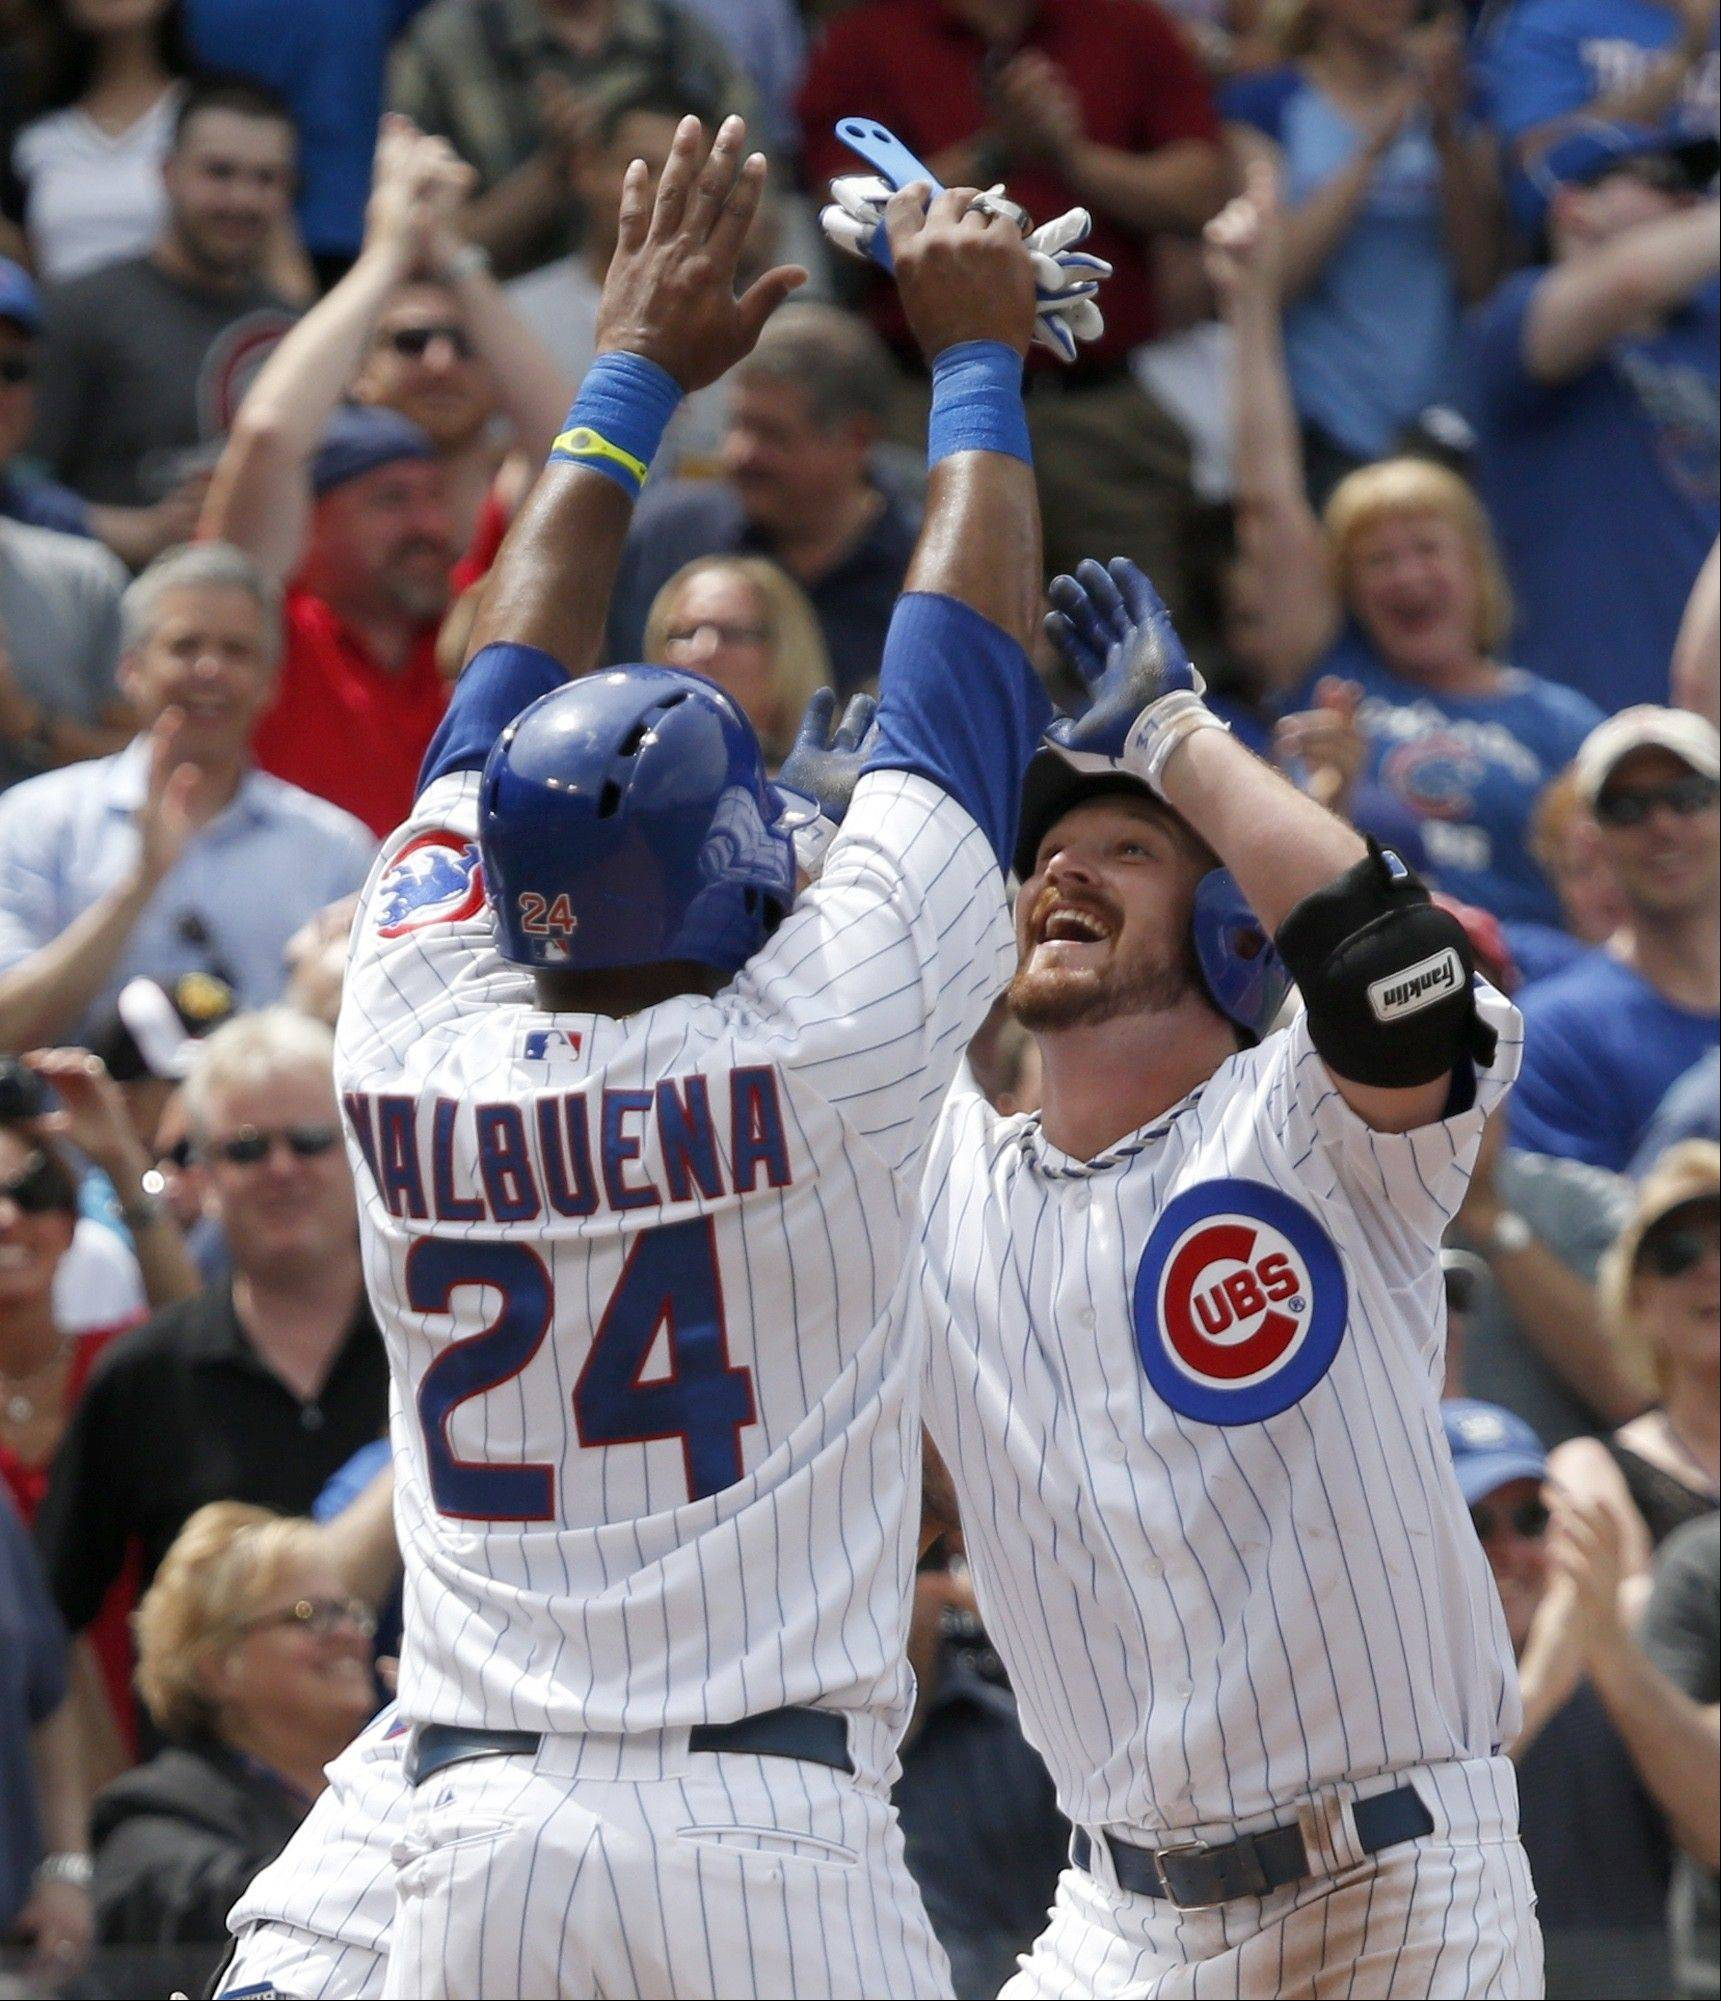 Cubs starting pitcher Travis Wood celebrates at home plate with Luis Valbuena after hitting a grand slam off White Sox starter Jake Peavy in the fourth inning Thursday at Wrigley Field.